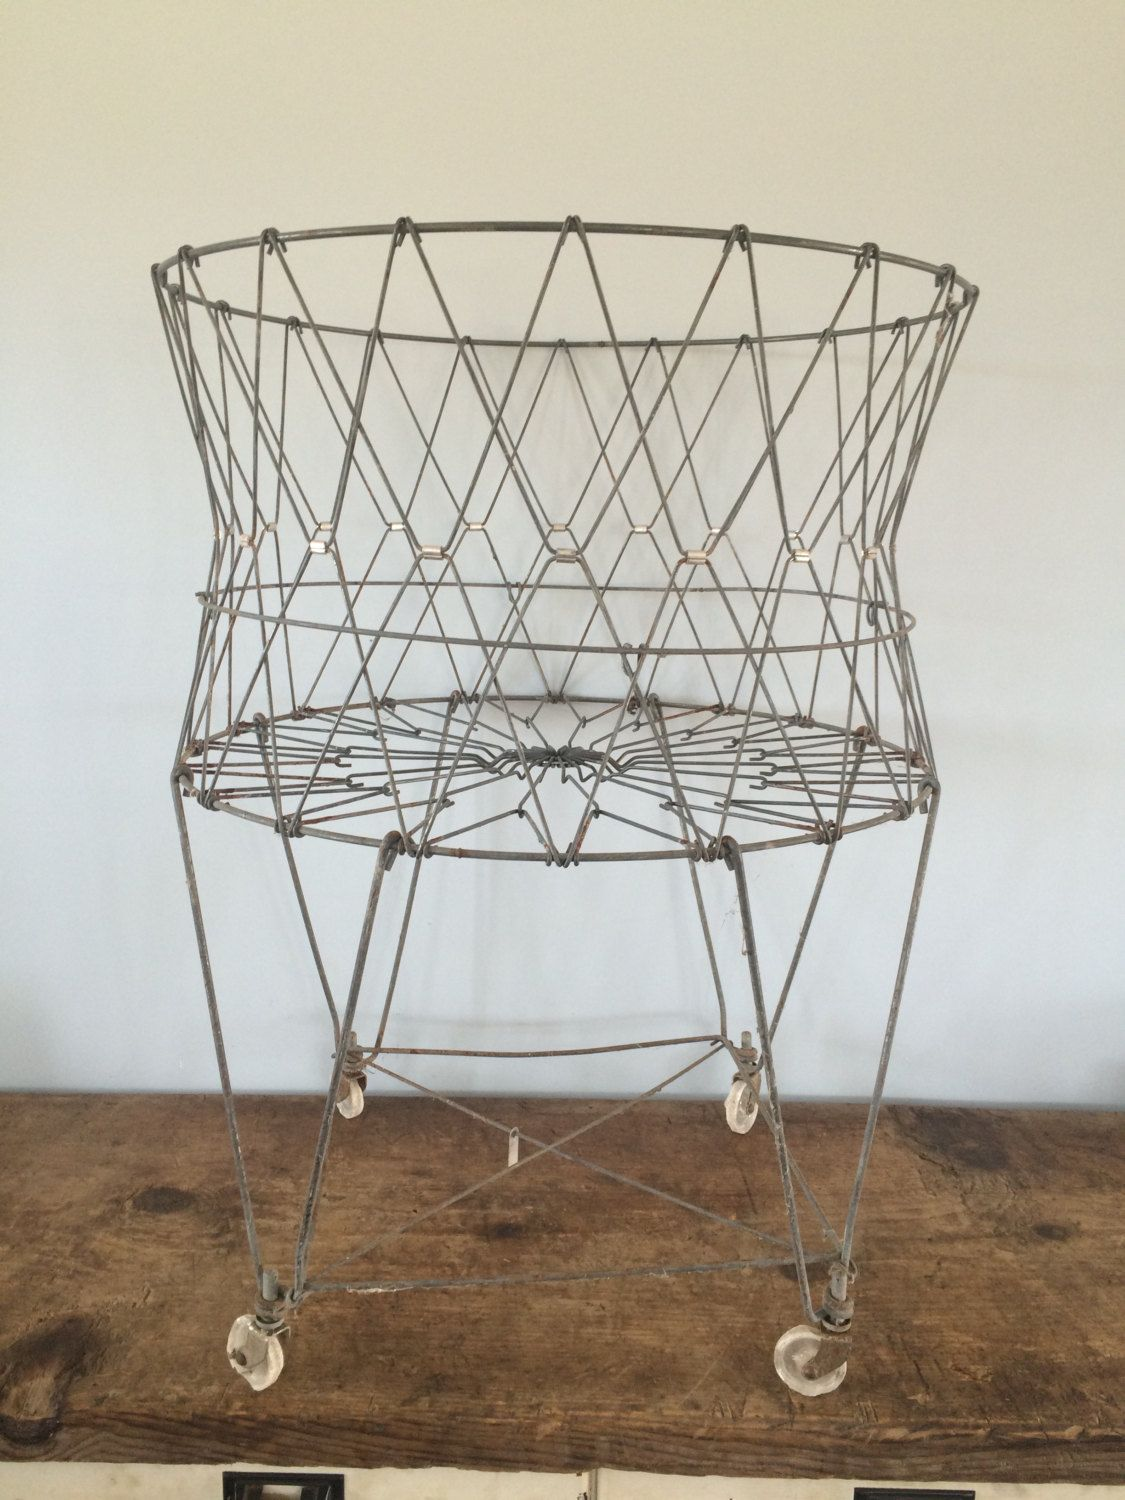 Vintage Original Collapsable Wire Laundry Basket on Wheels, Rolling ...